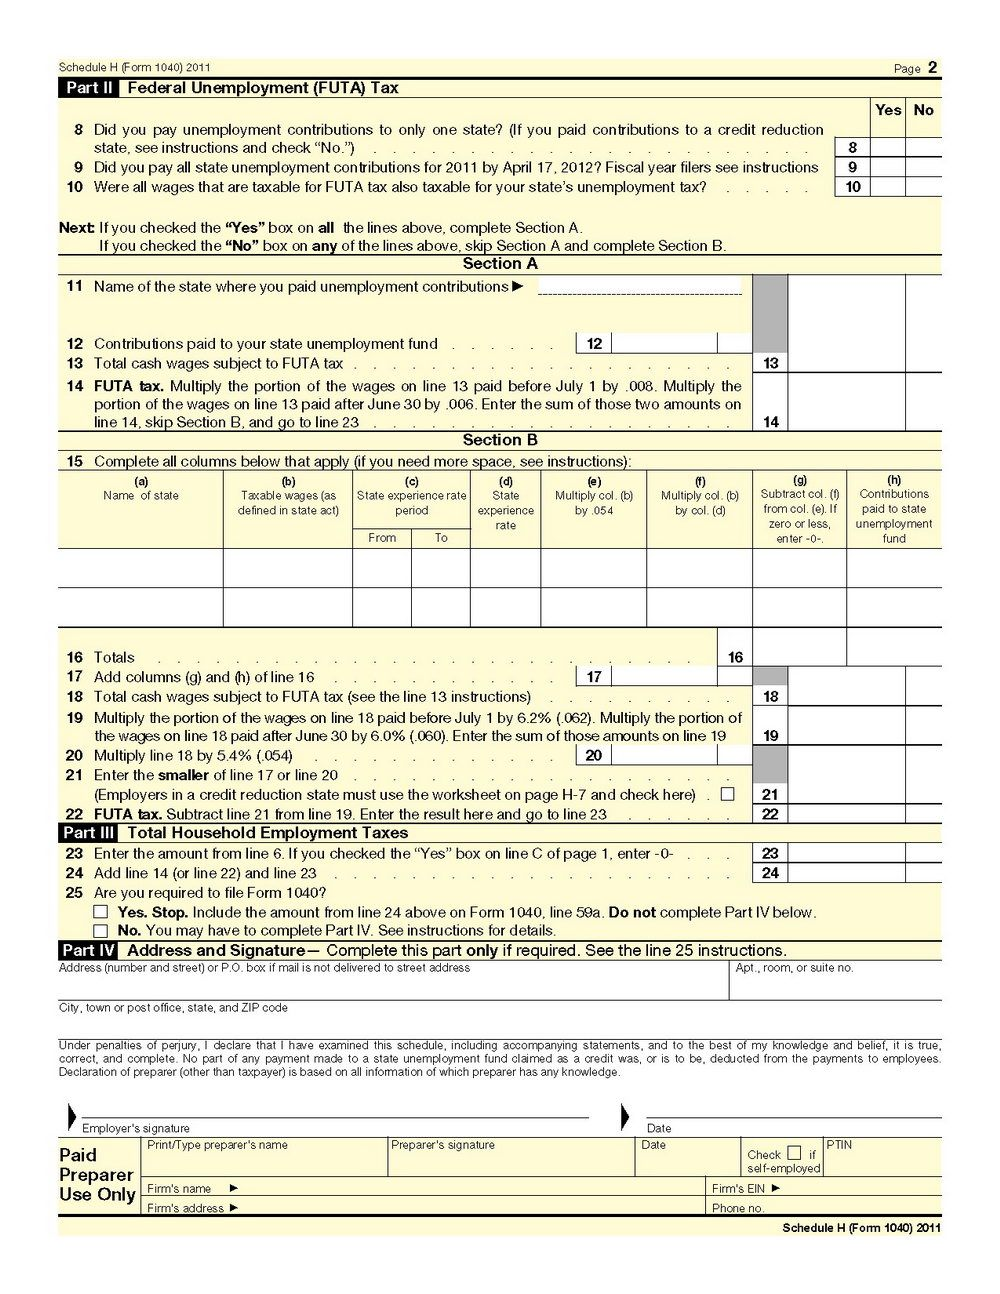 Printable 1040a Tax Form 2014